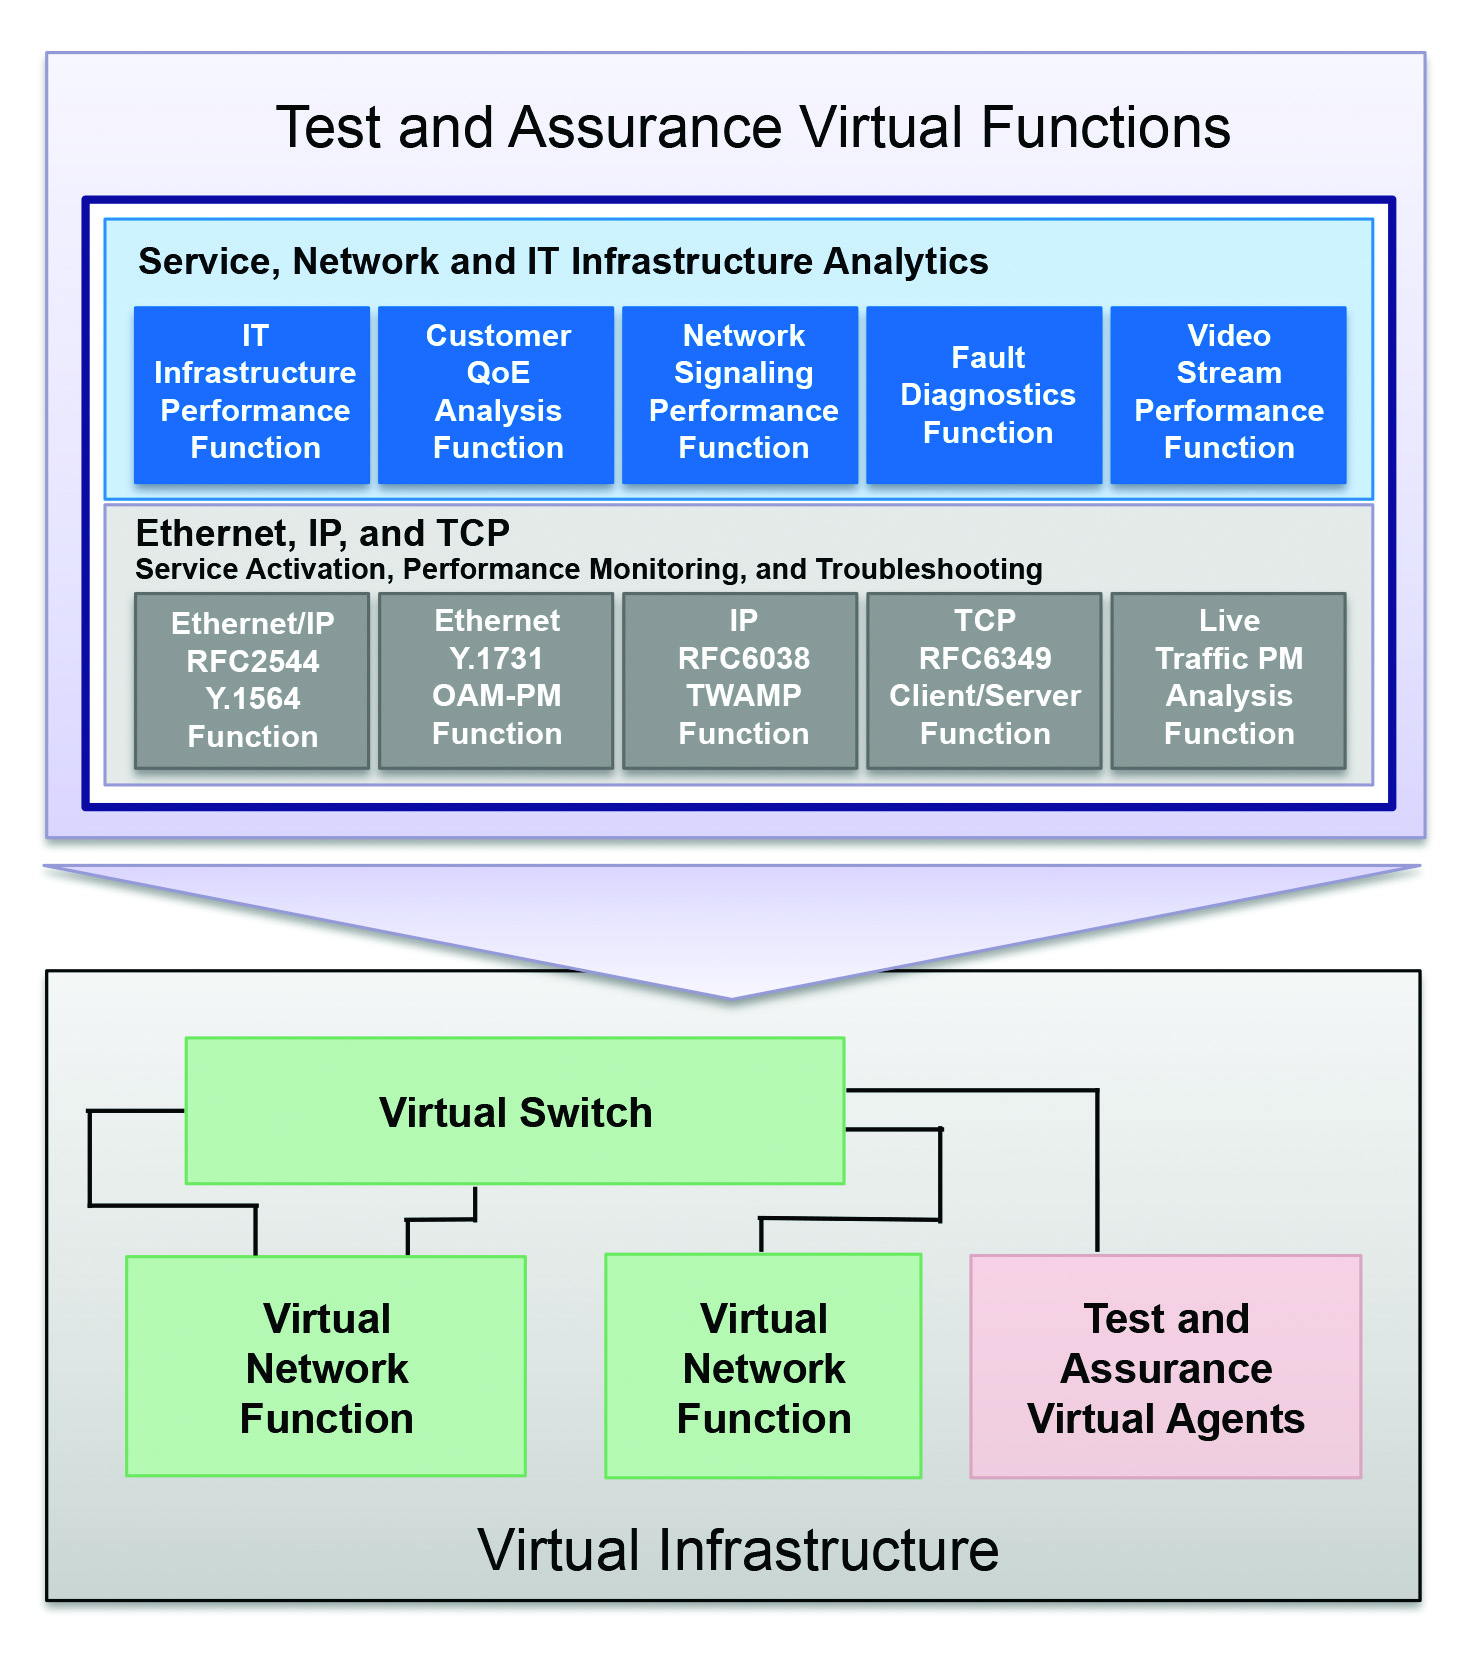 Successful network virtualization requires operational